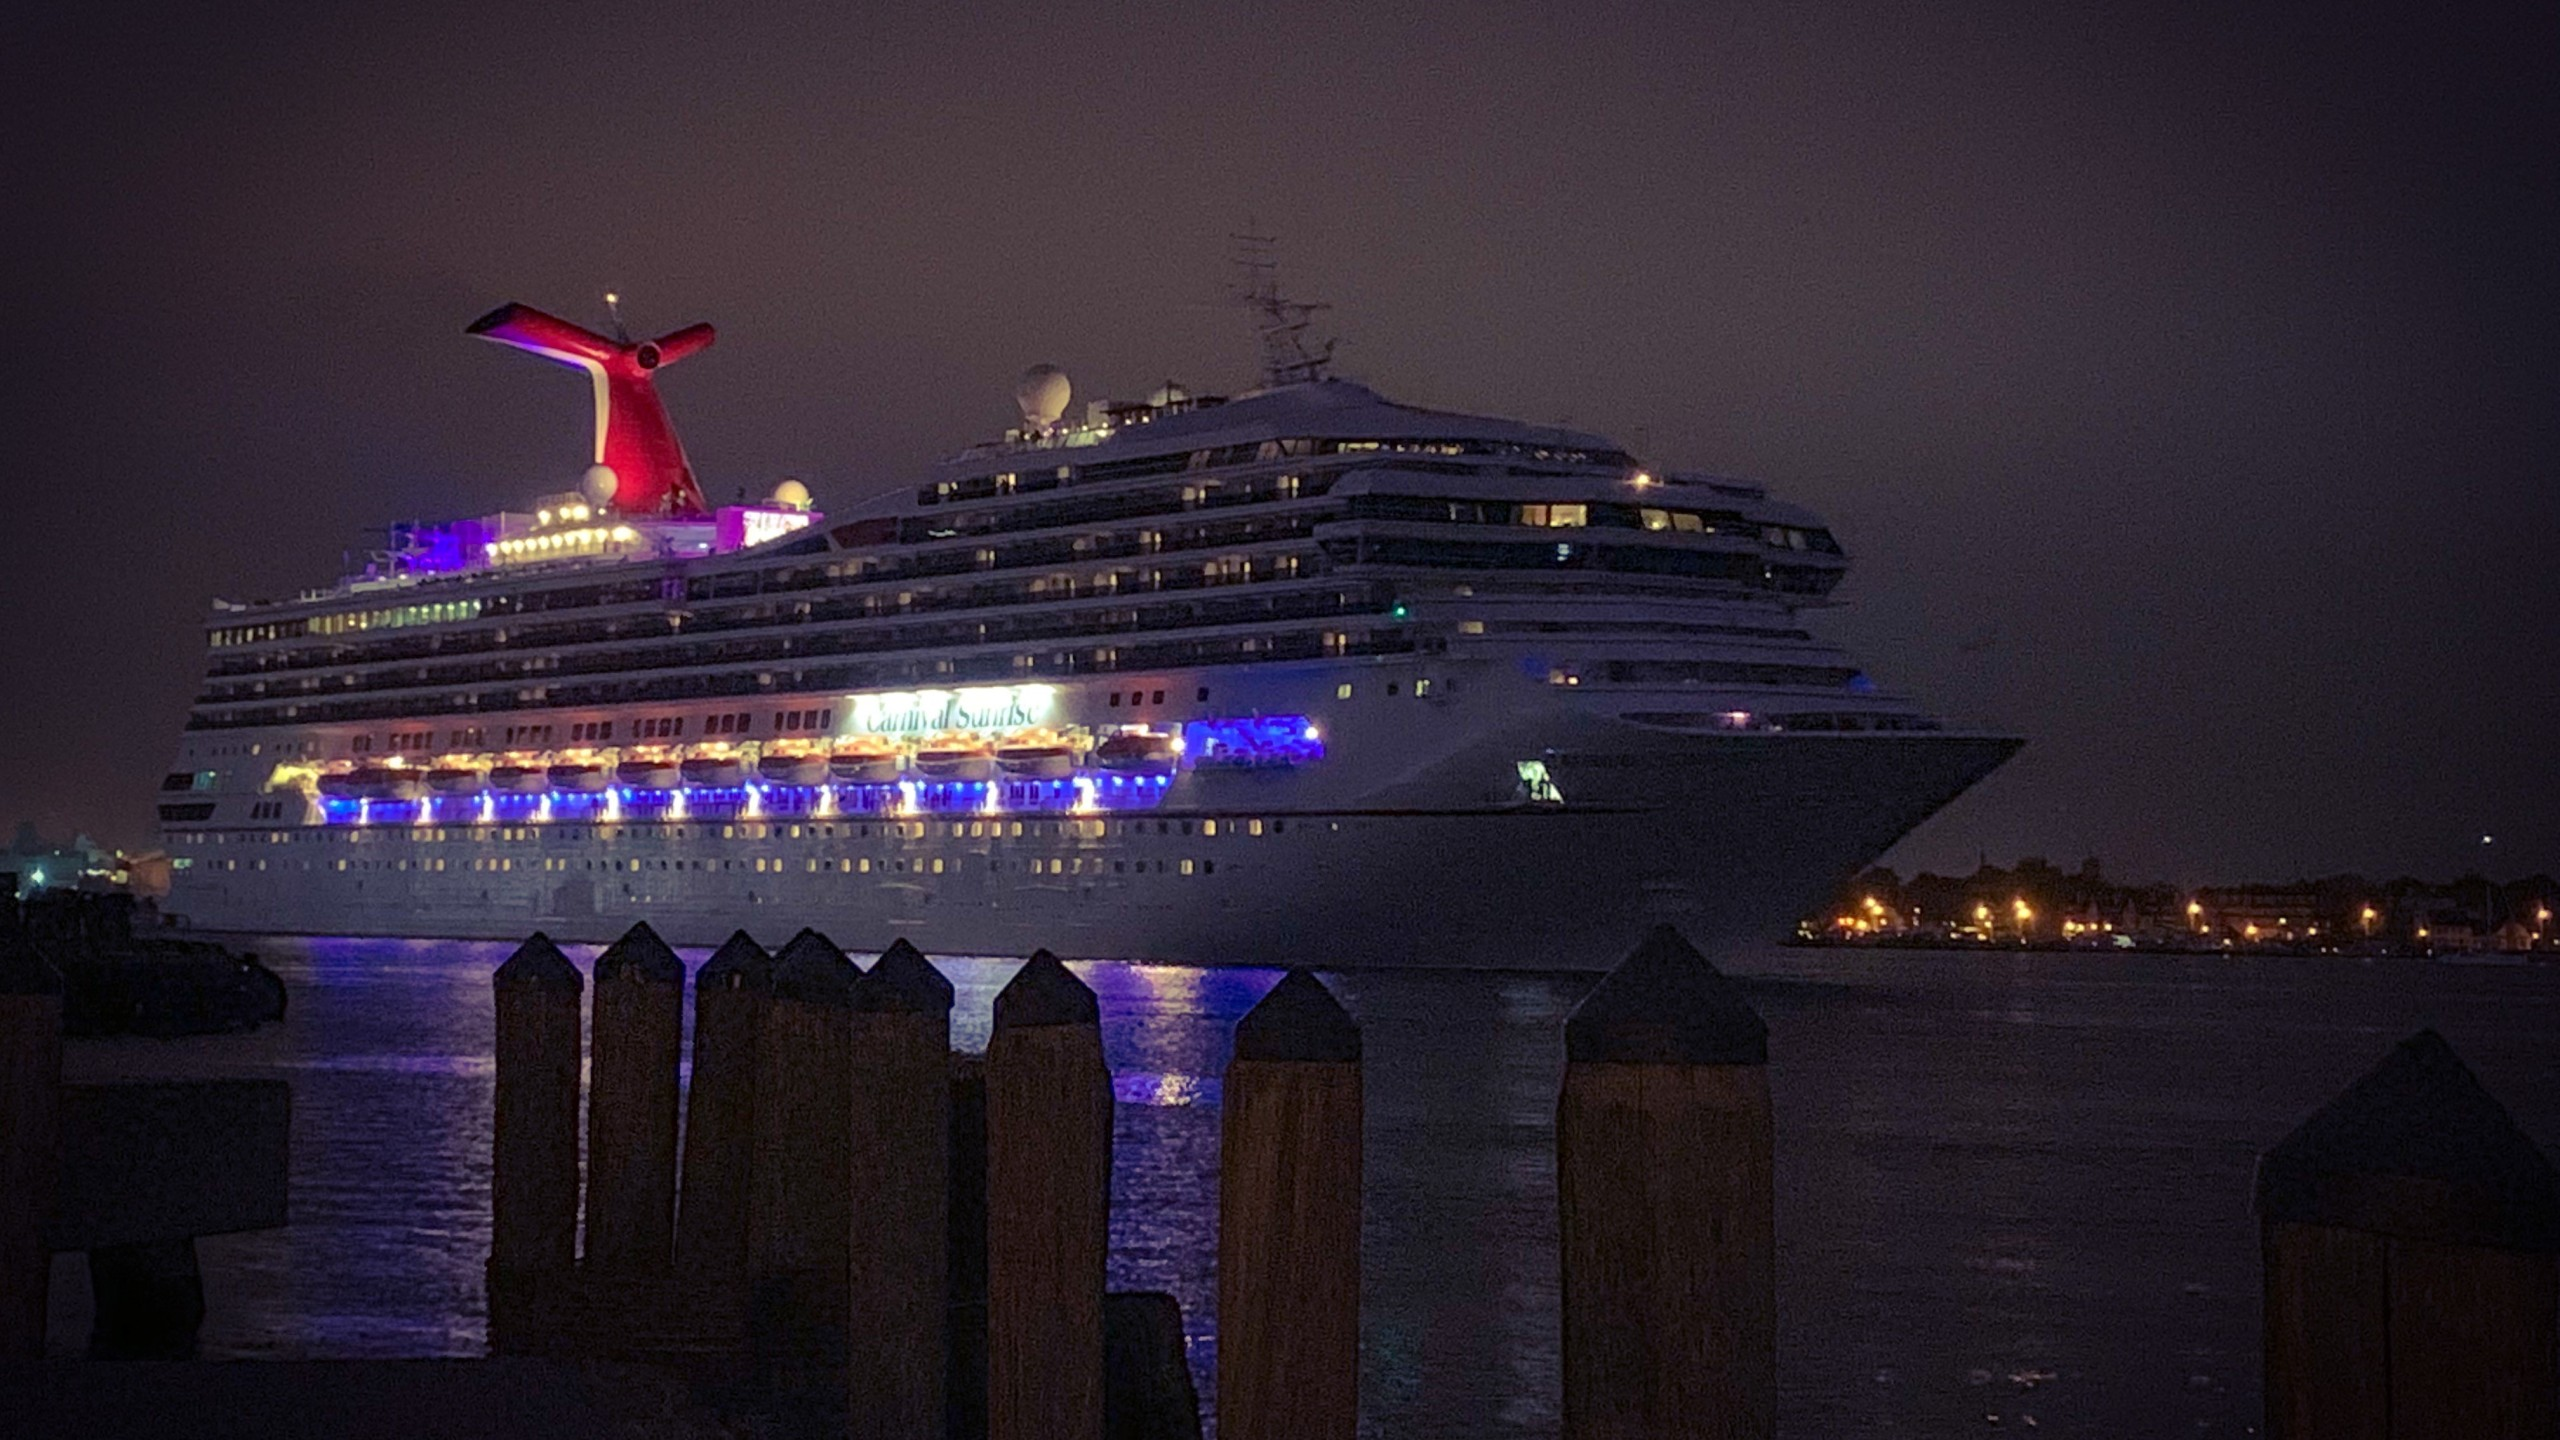 Newly renovated Carnival Sunrise makes its debut in Norfolk